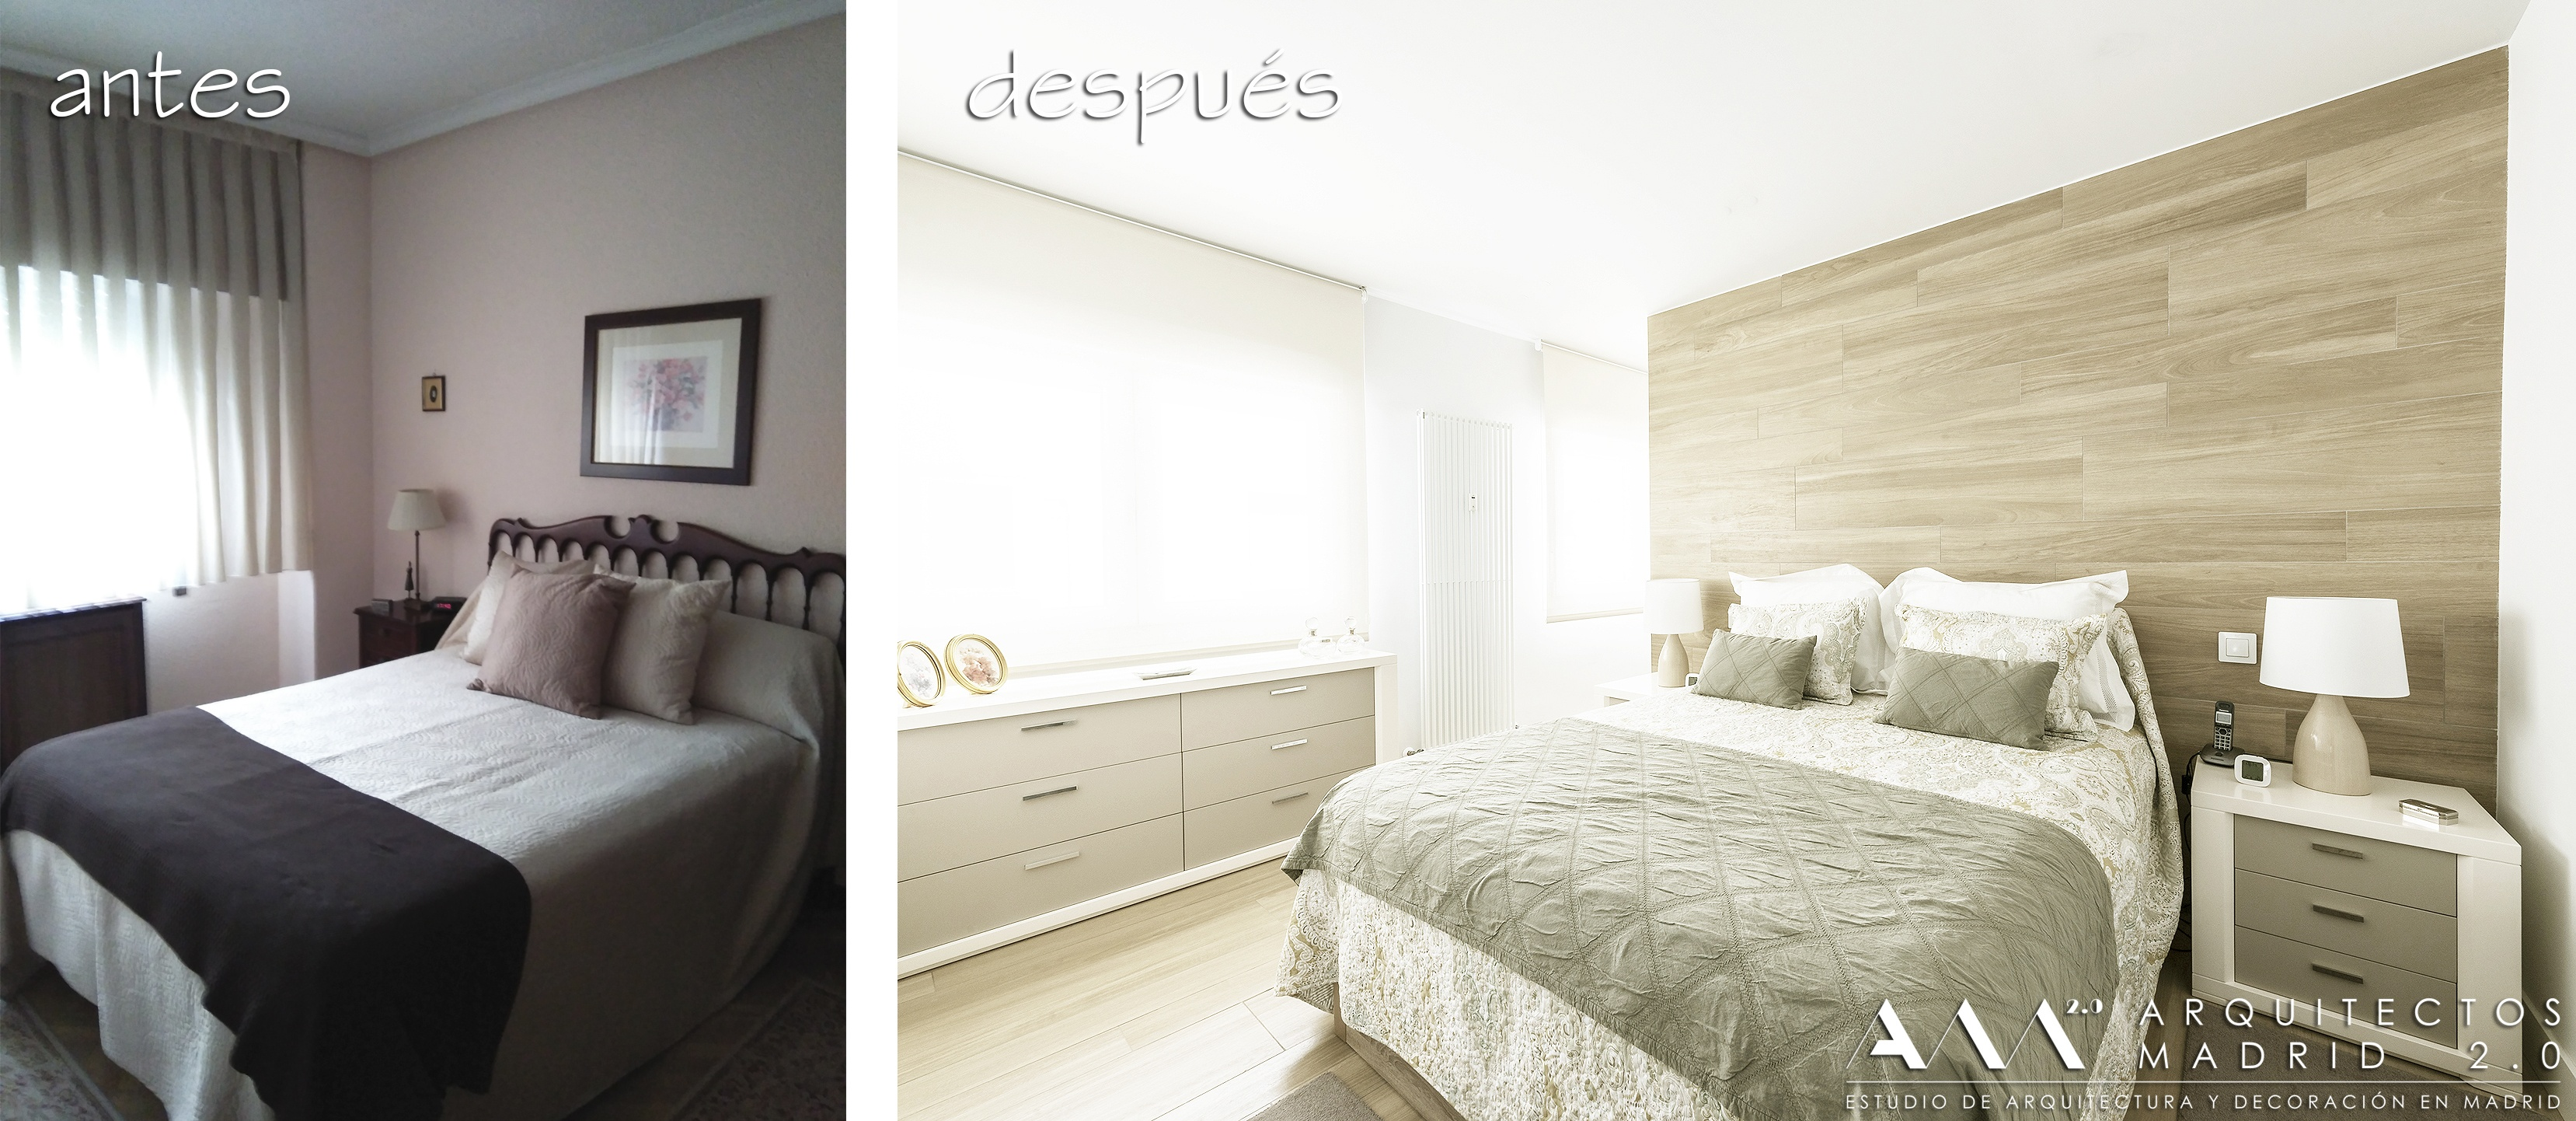 antes-despues-reforma-vivienda-ideas-decoracion-dormitorio-matrimonio